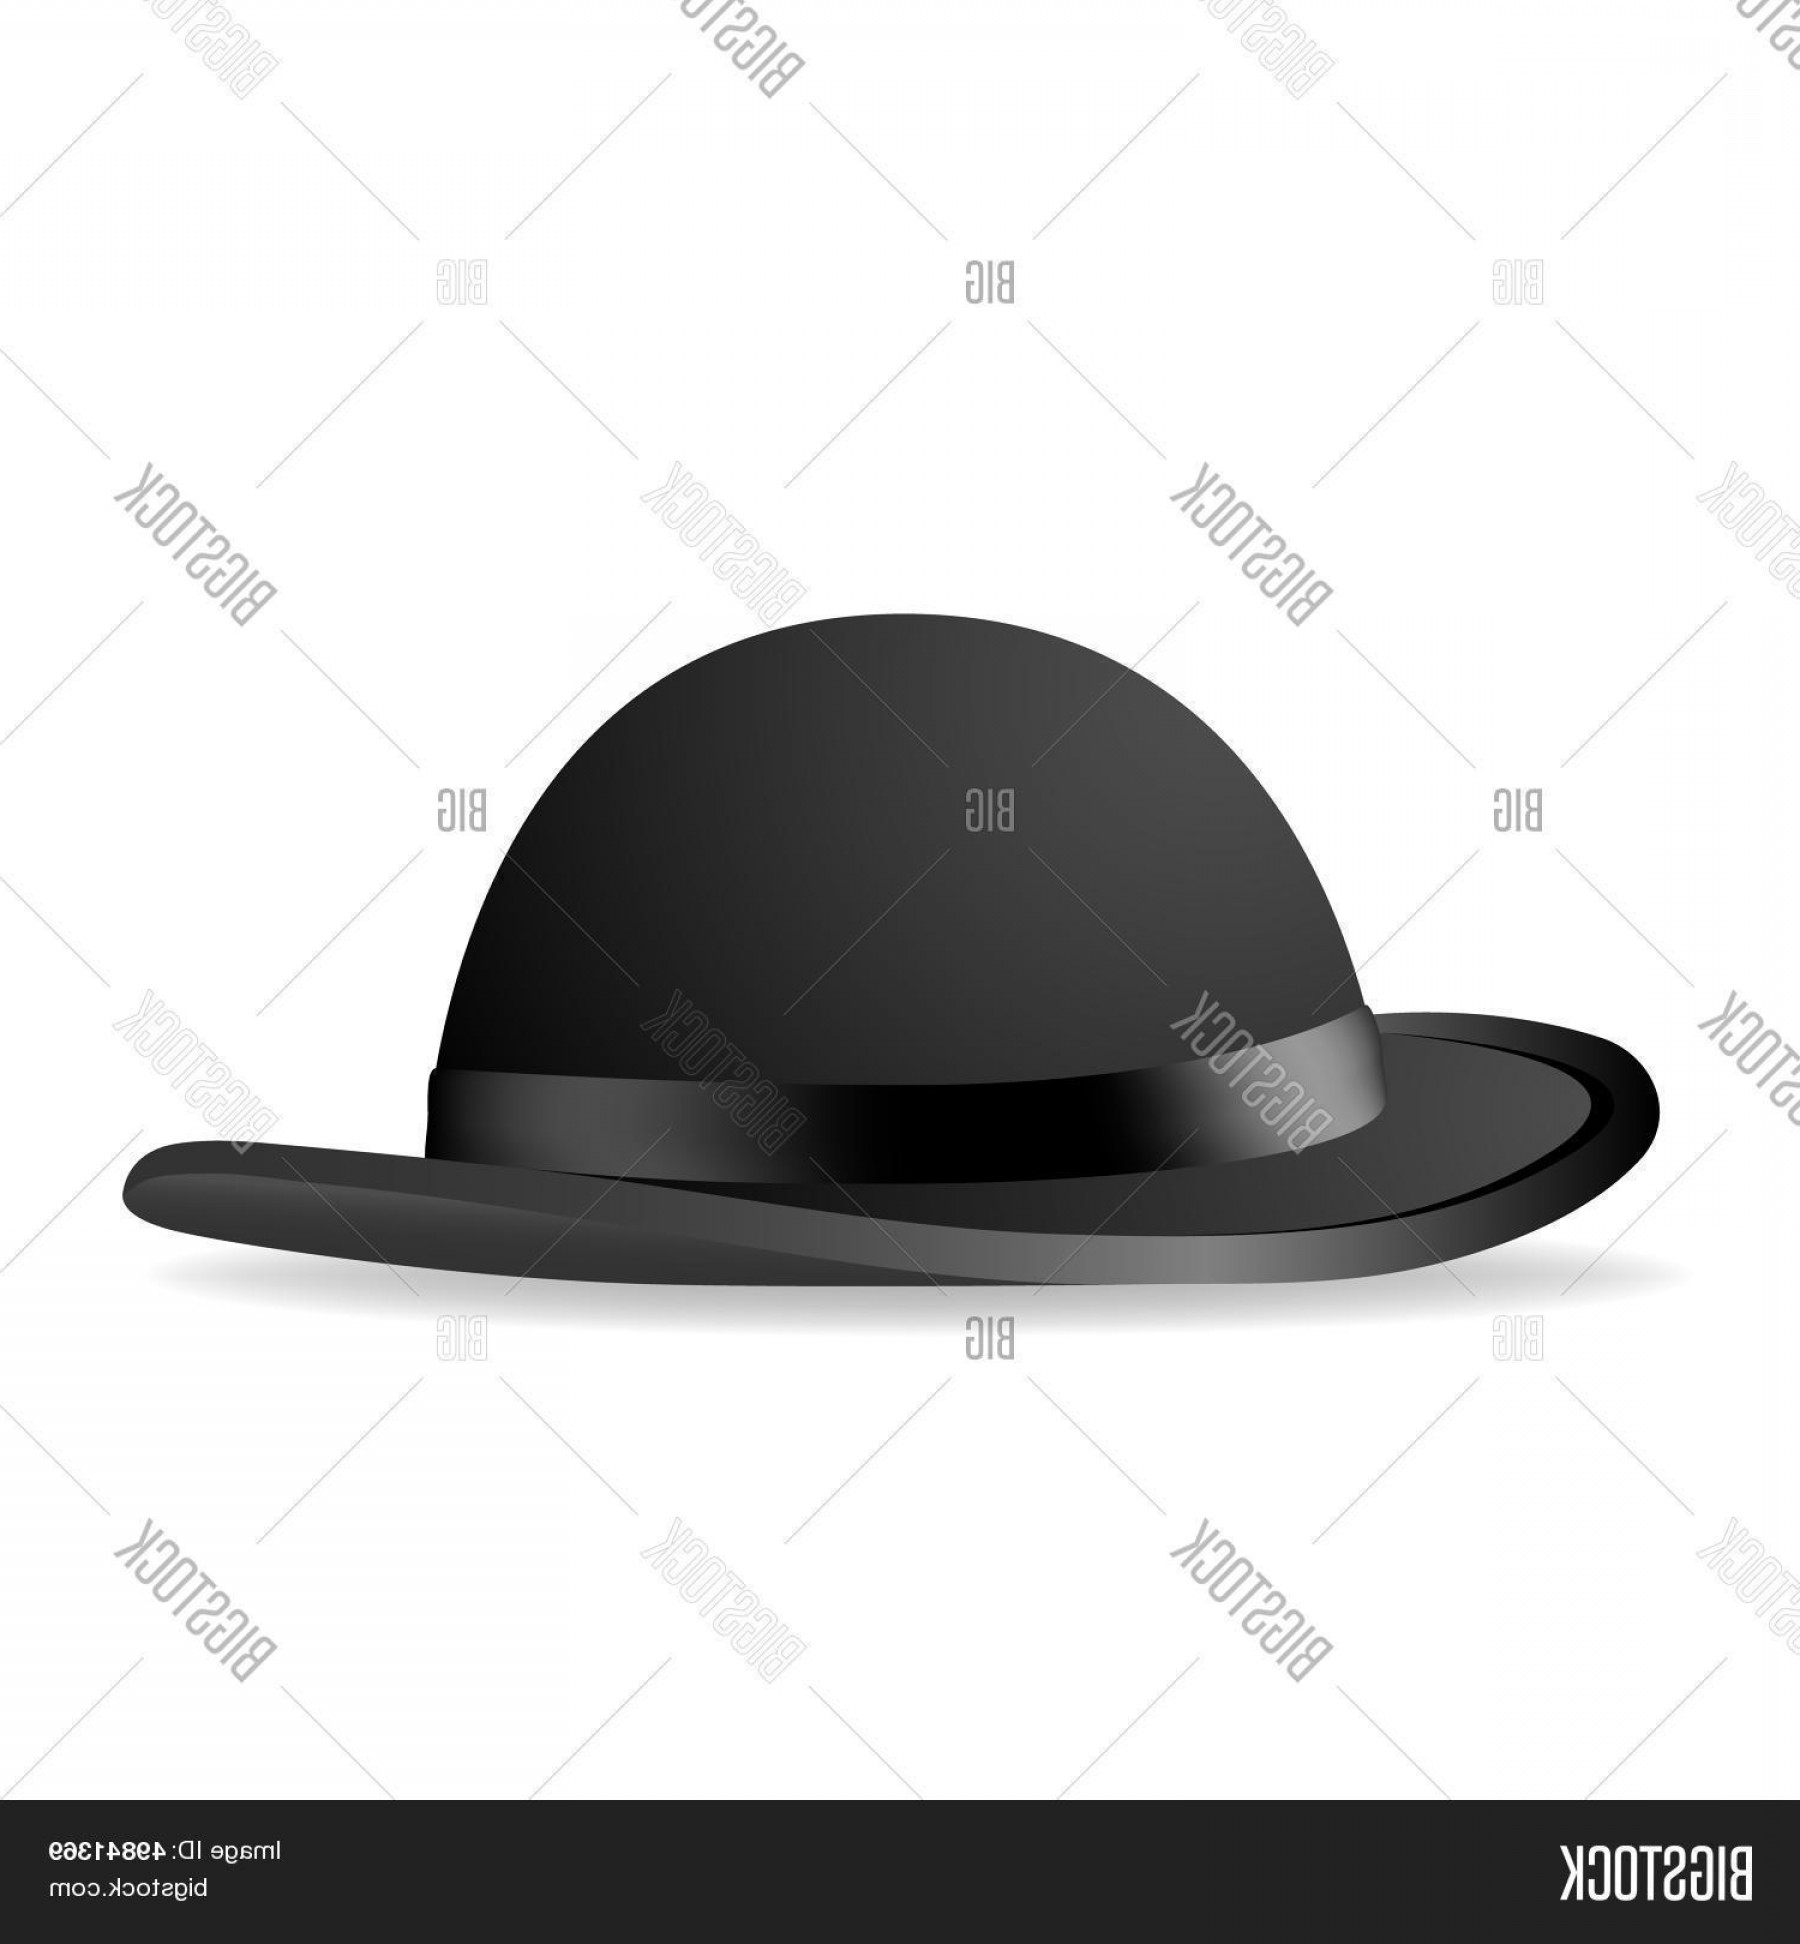 Bowler Hat Vector: Stock Vector Black Bowler Hat Vector Illustration